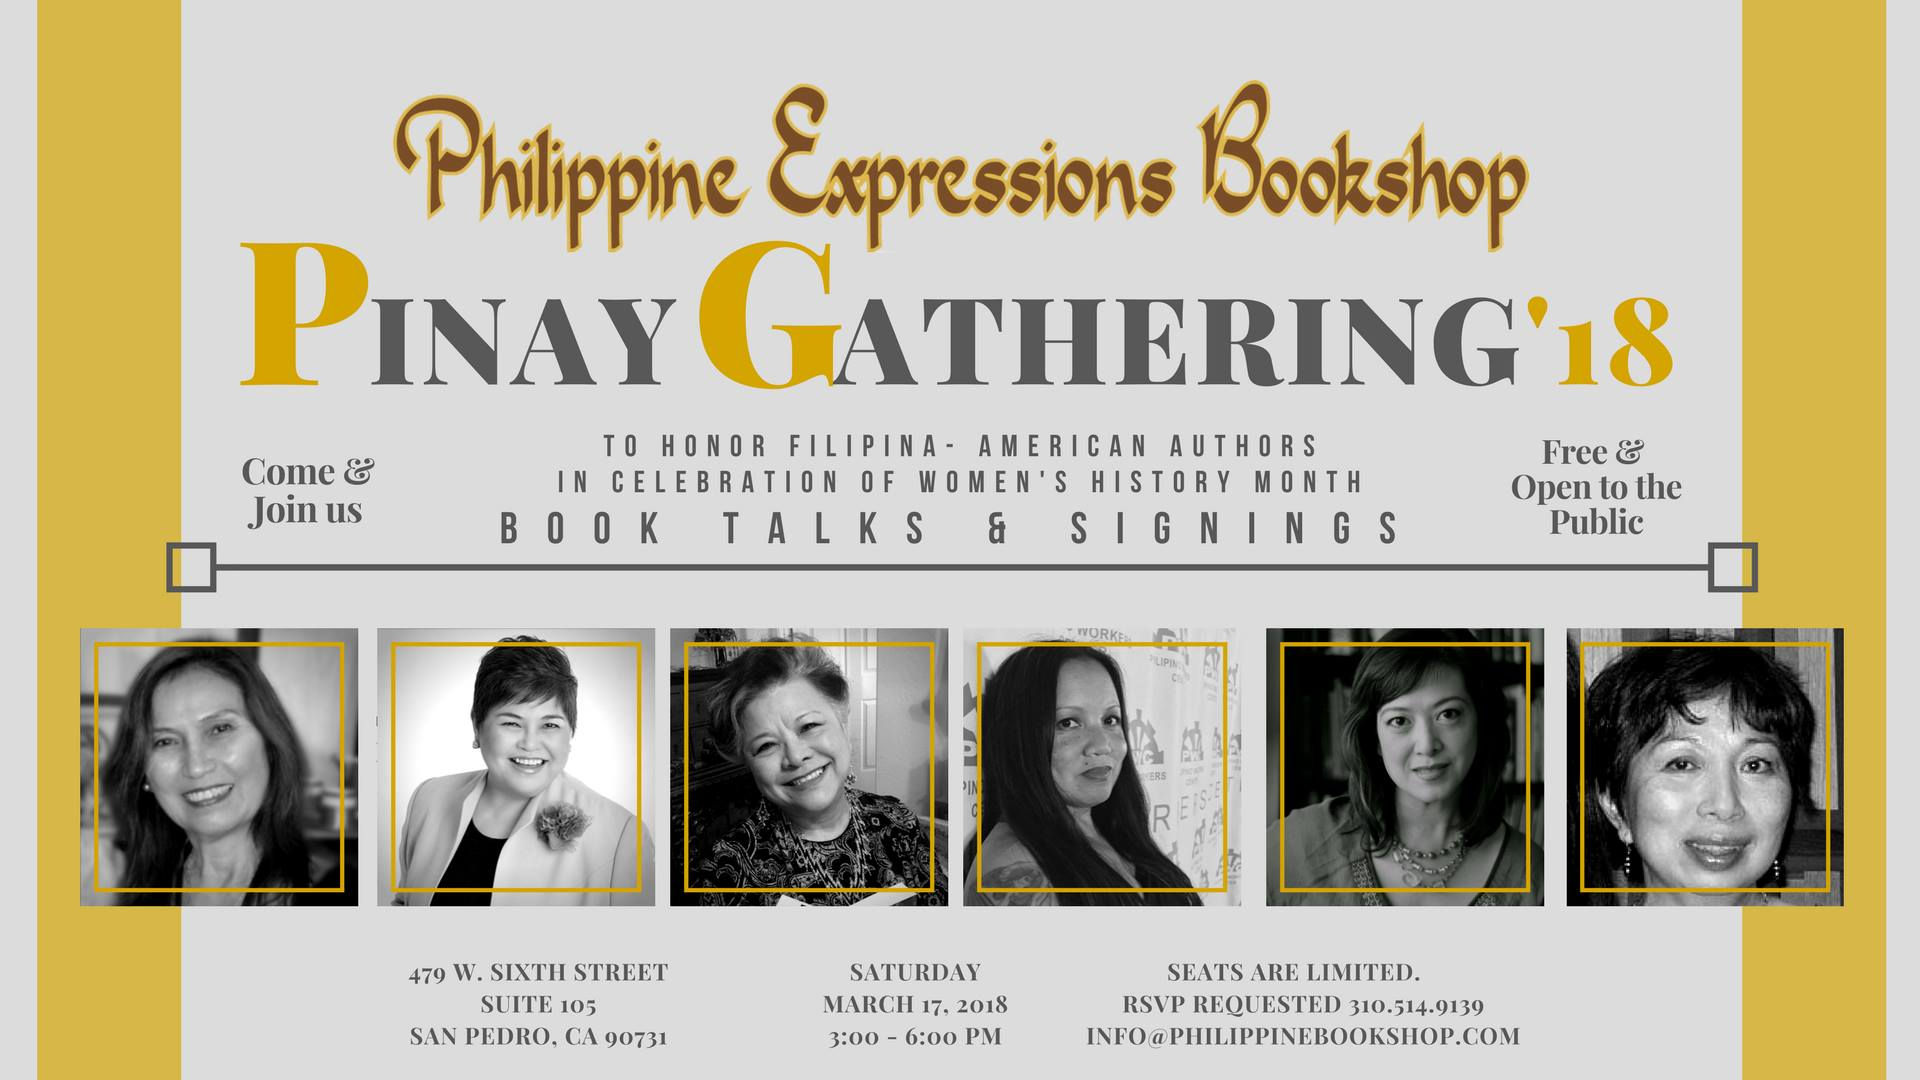 Philippine Expressions Bookshop event